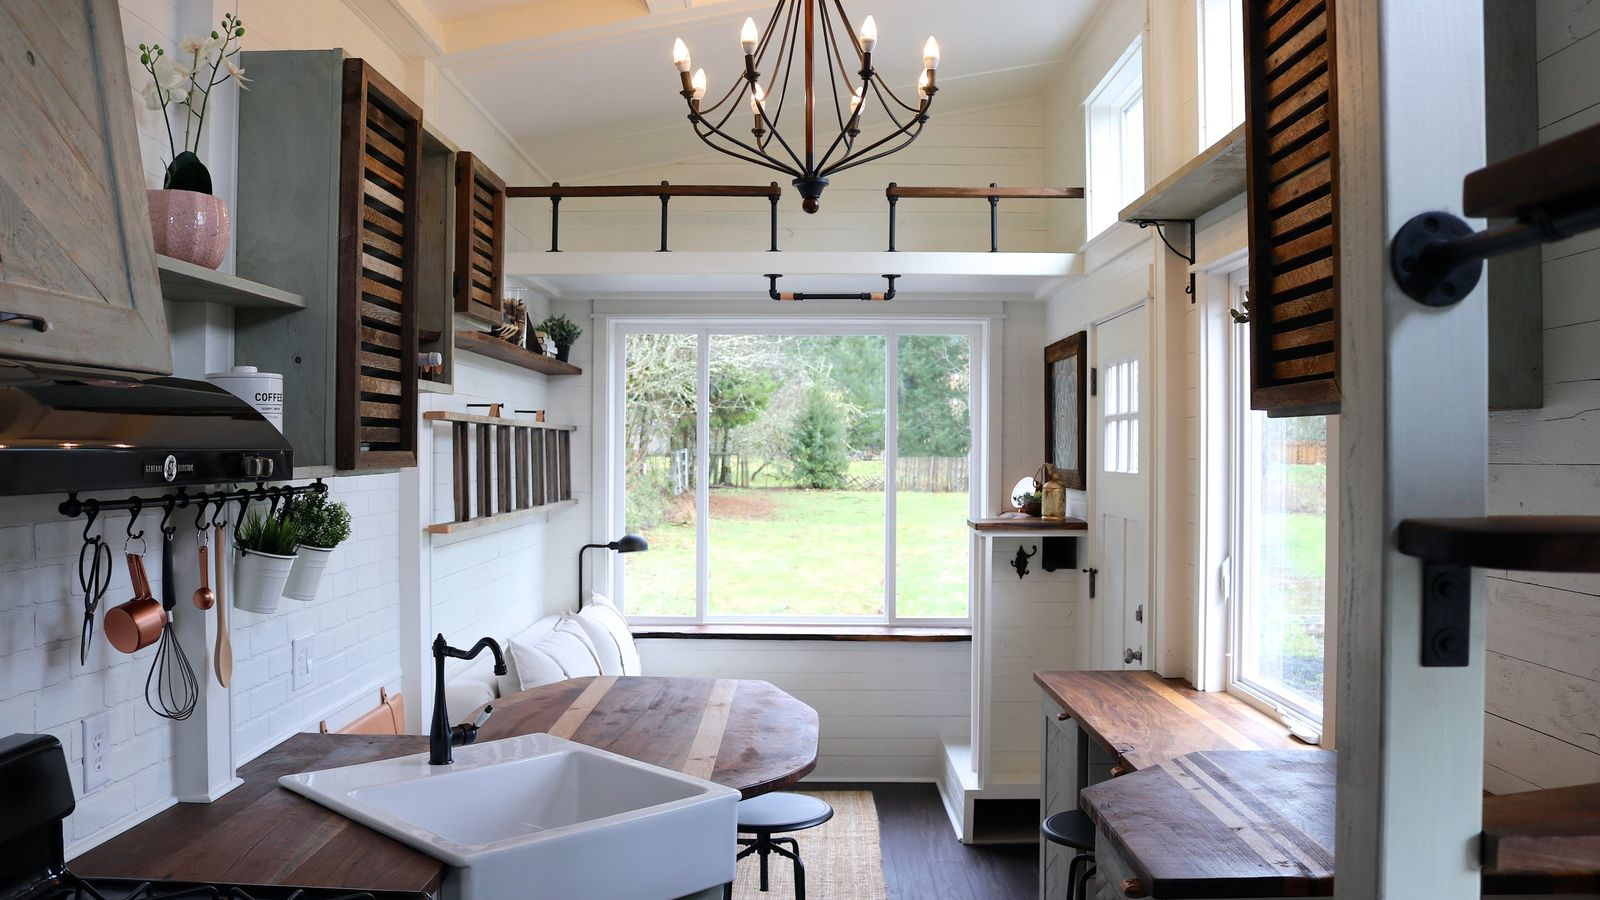 Tiny house packs farmhouse chic into 240 square feet for Ellen brotman interior designs